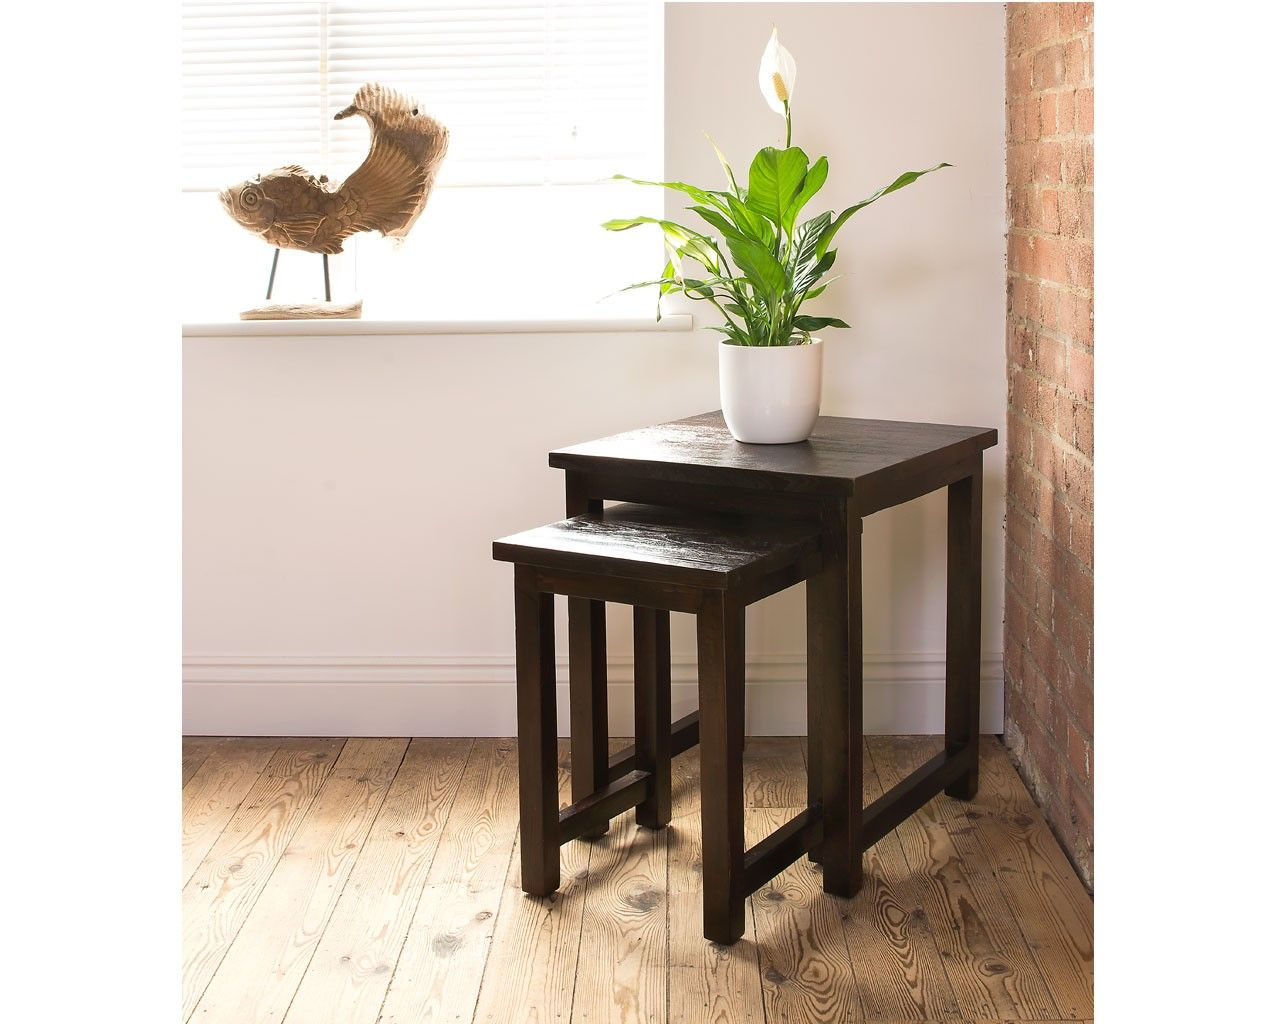 Wonderful Henry Dark Teak Nest   Teak Furniture Is Perfect For The Living Room. This  Stylish